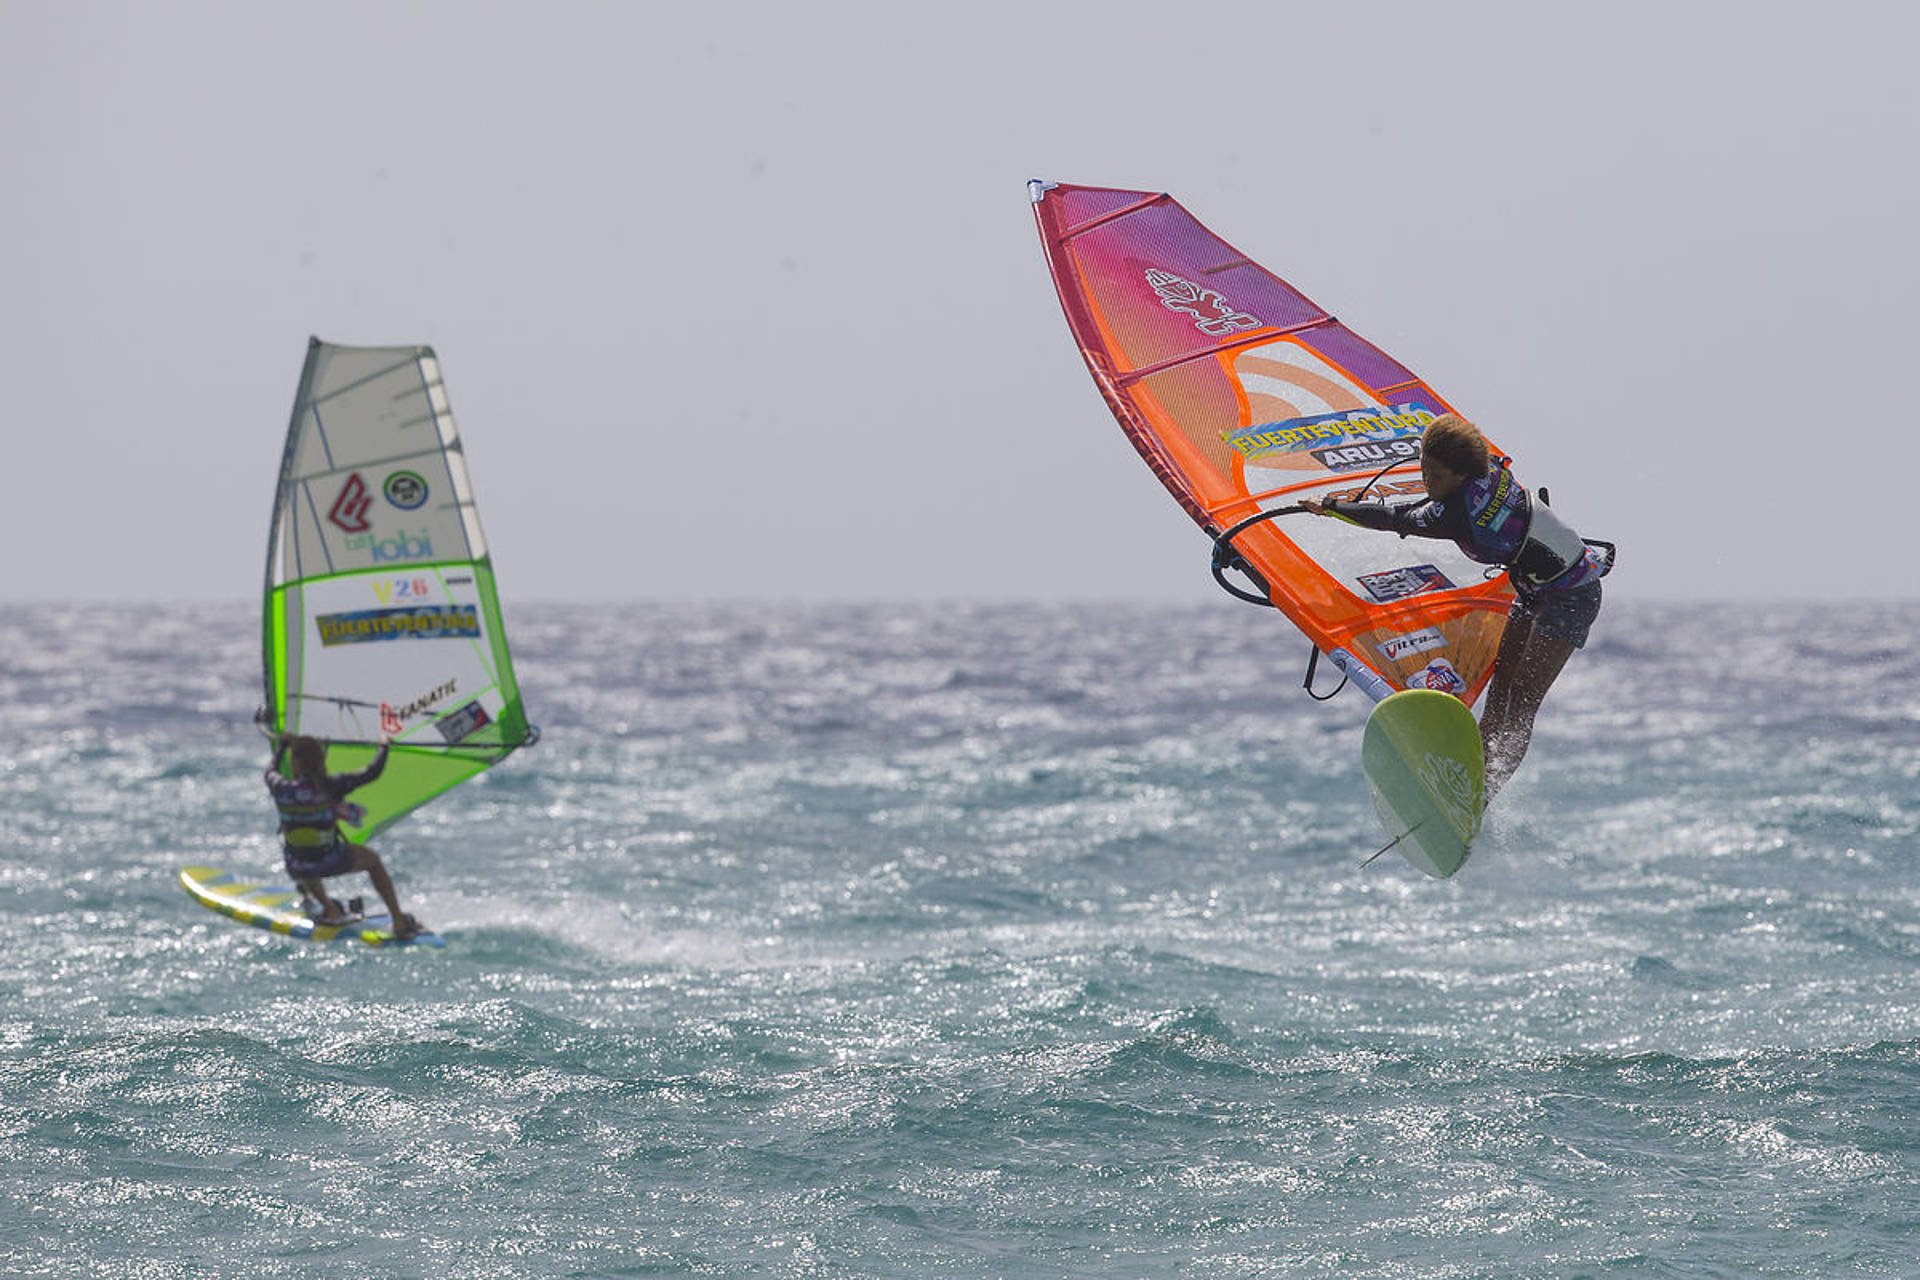 PWA WORLD WINDSURFING TOUR: Shaka Time